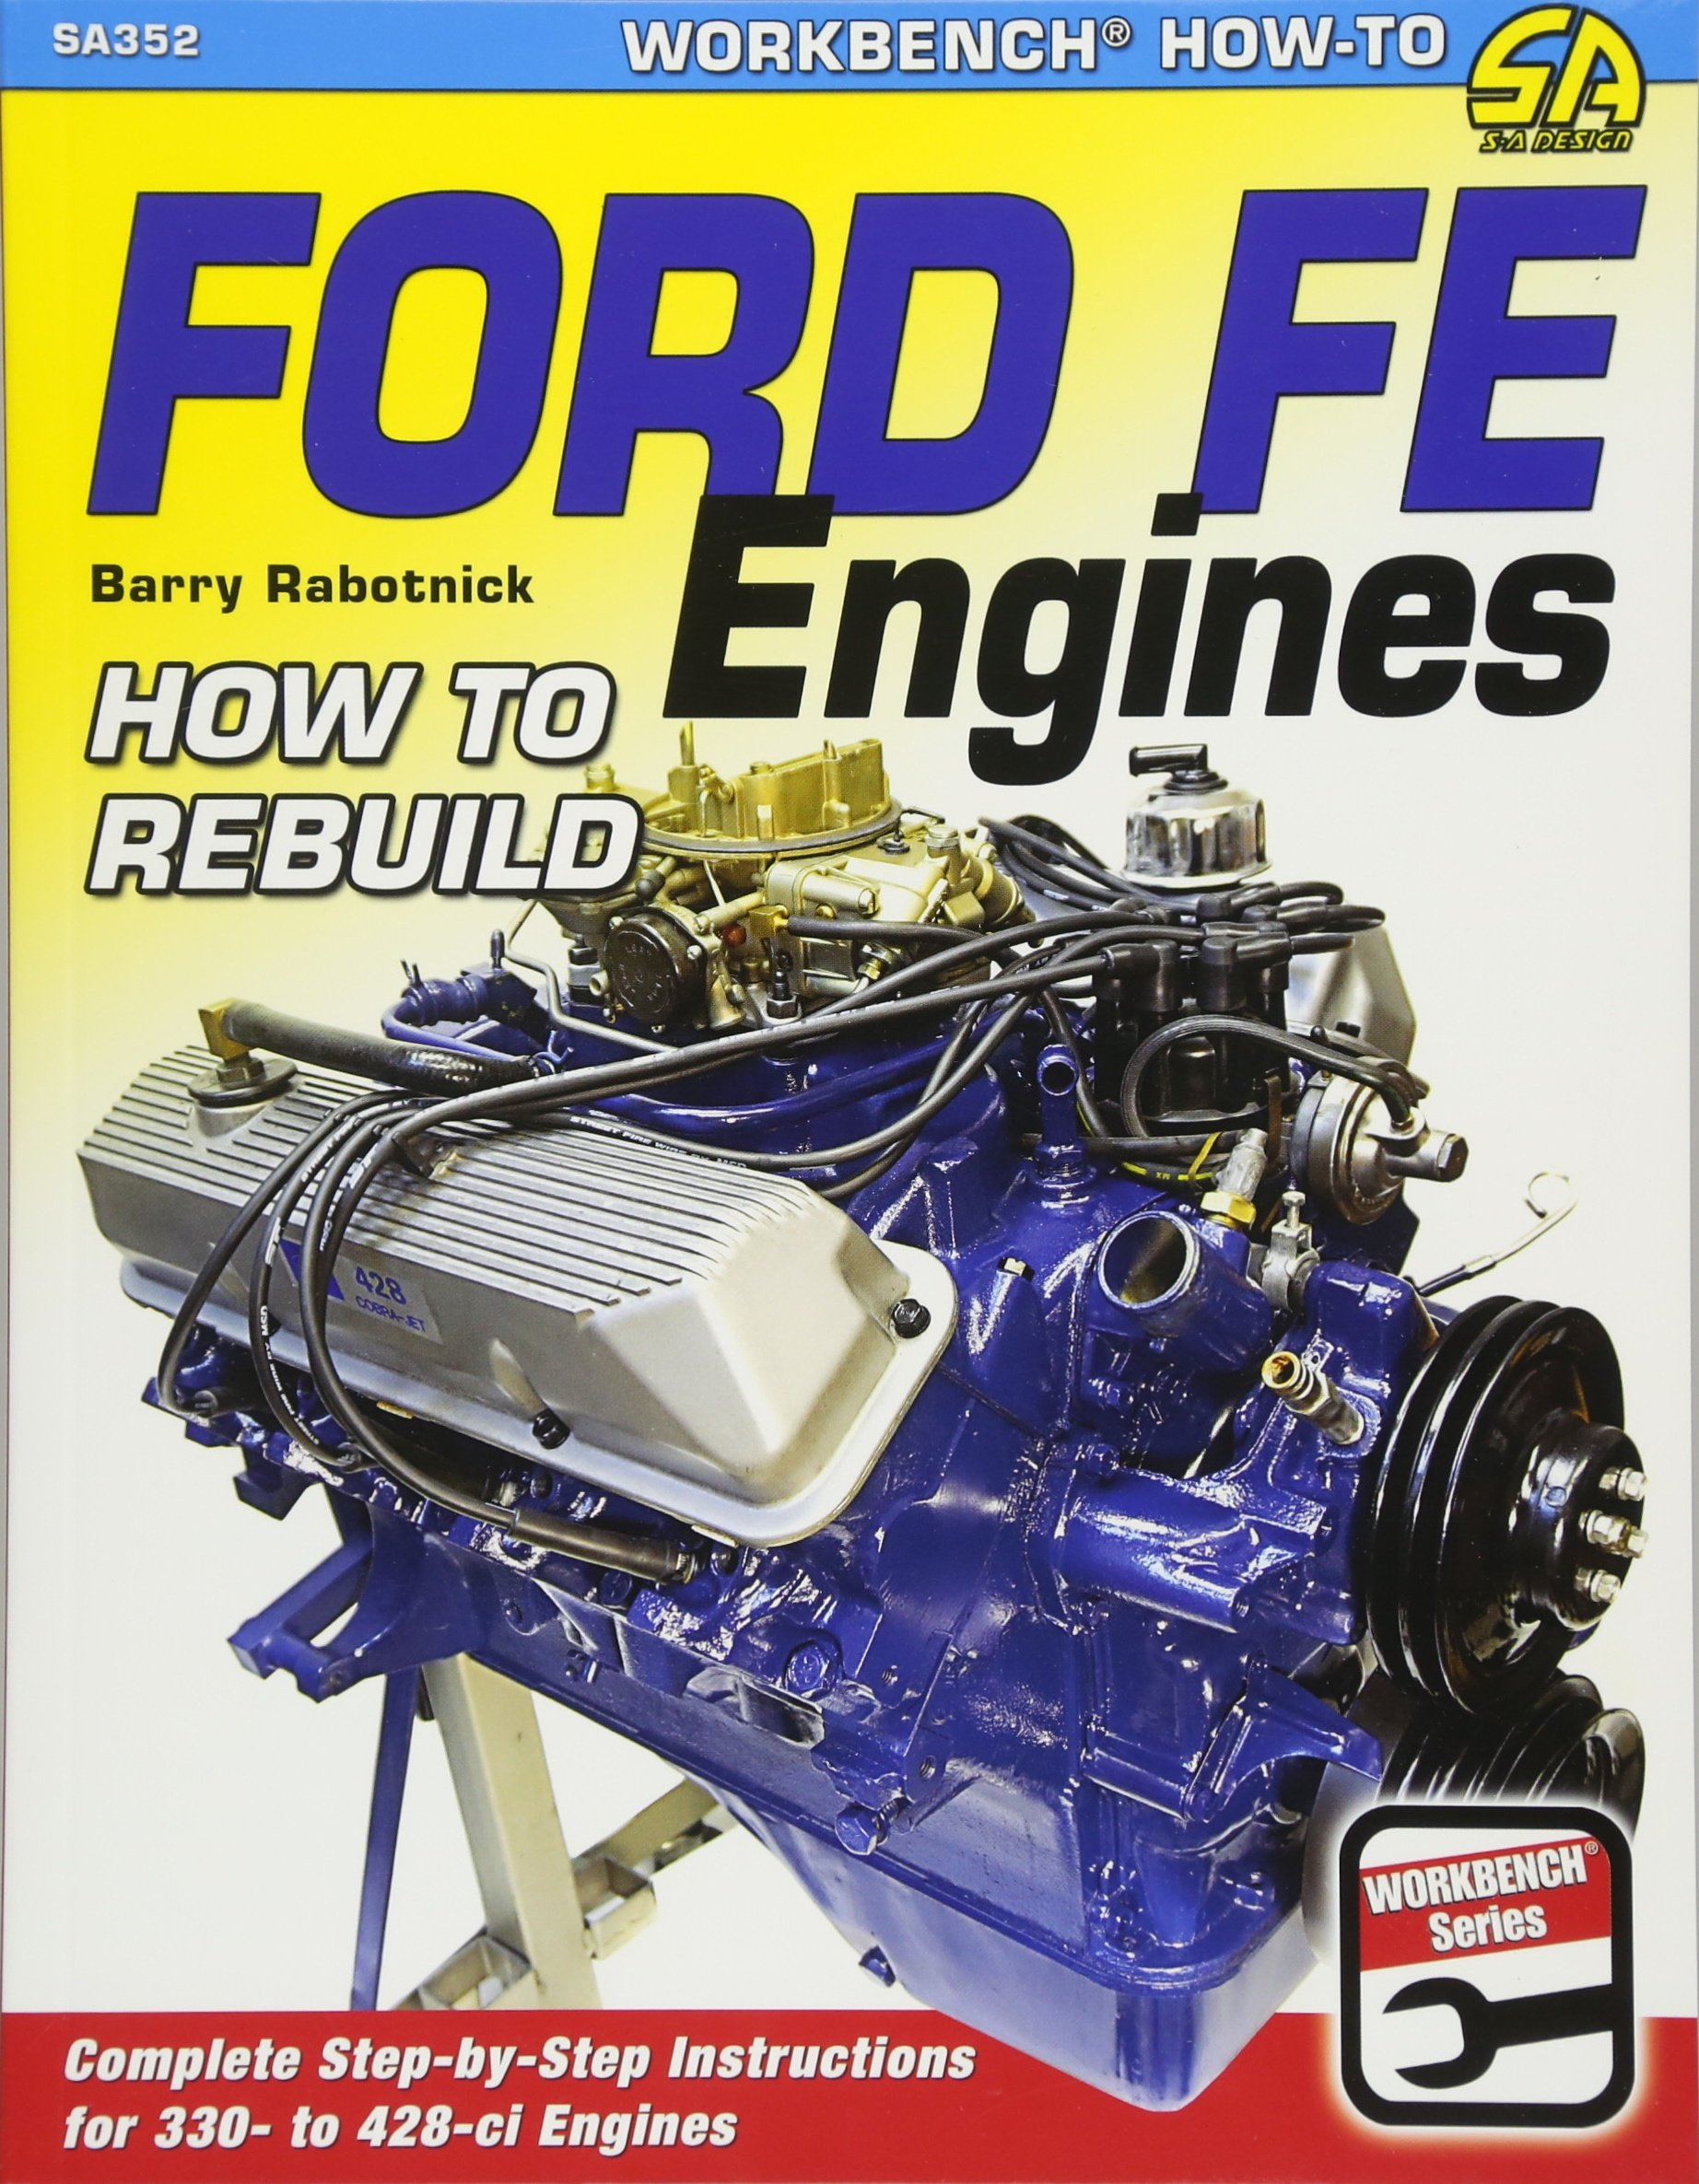 HOW TO REBUILD SA352 Cartech FORD FE ENGINES